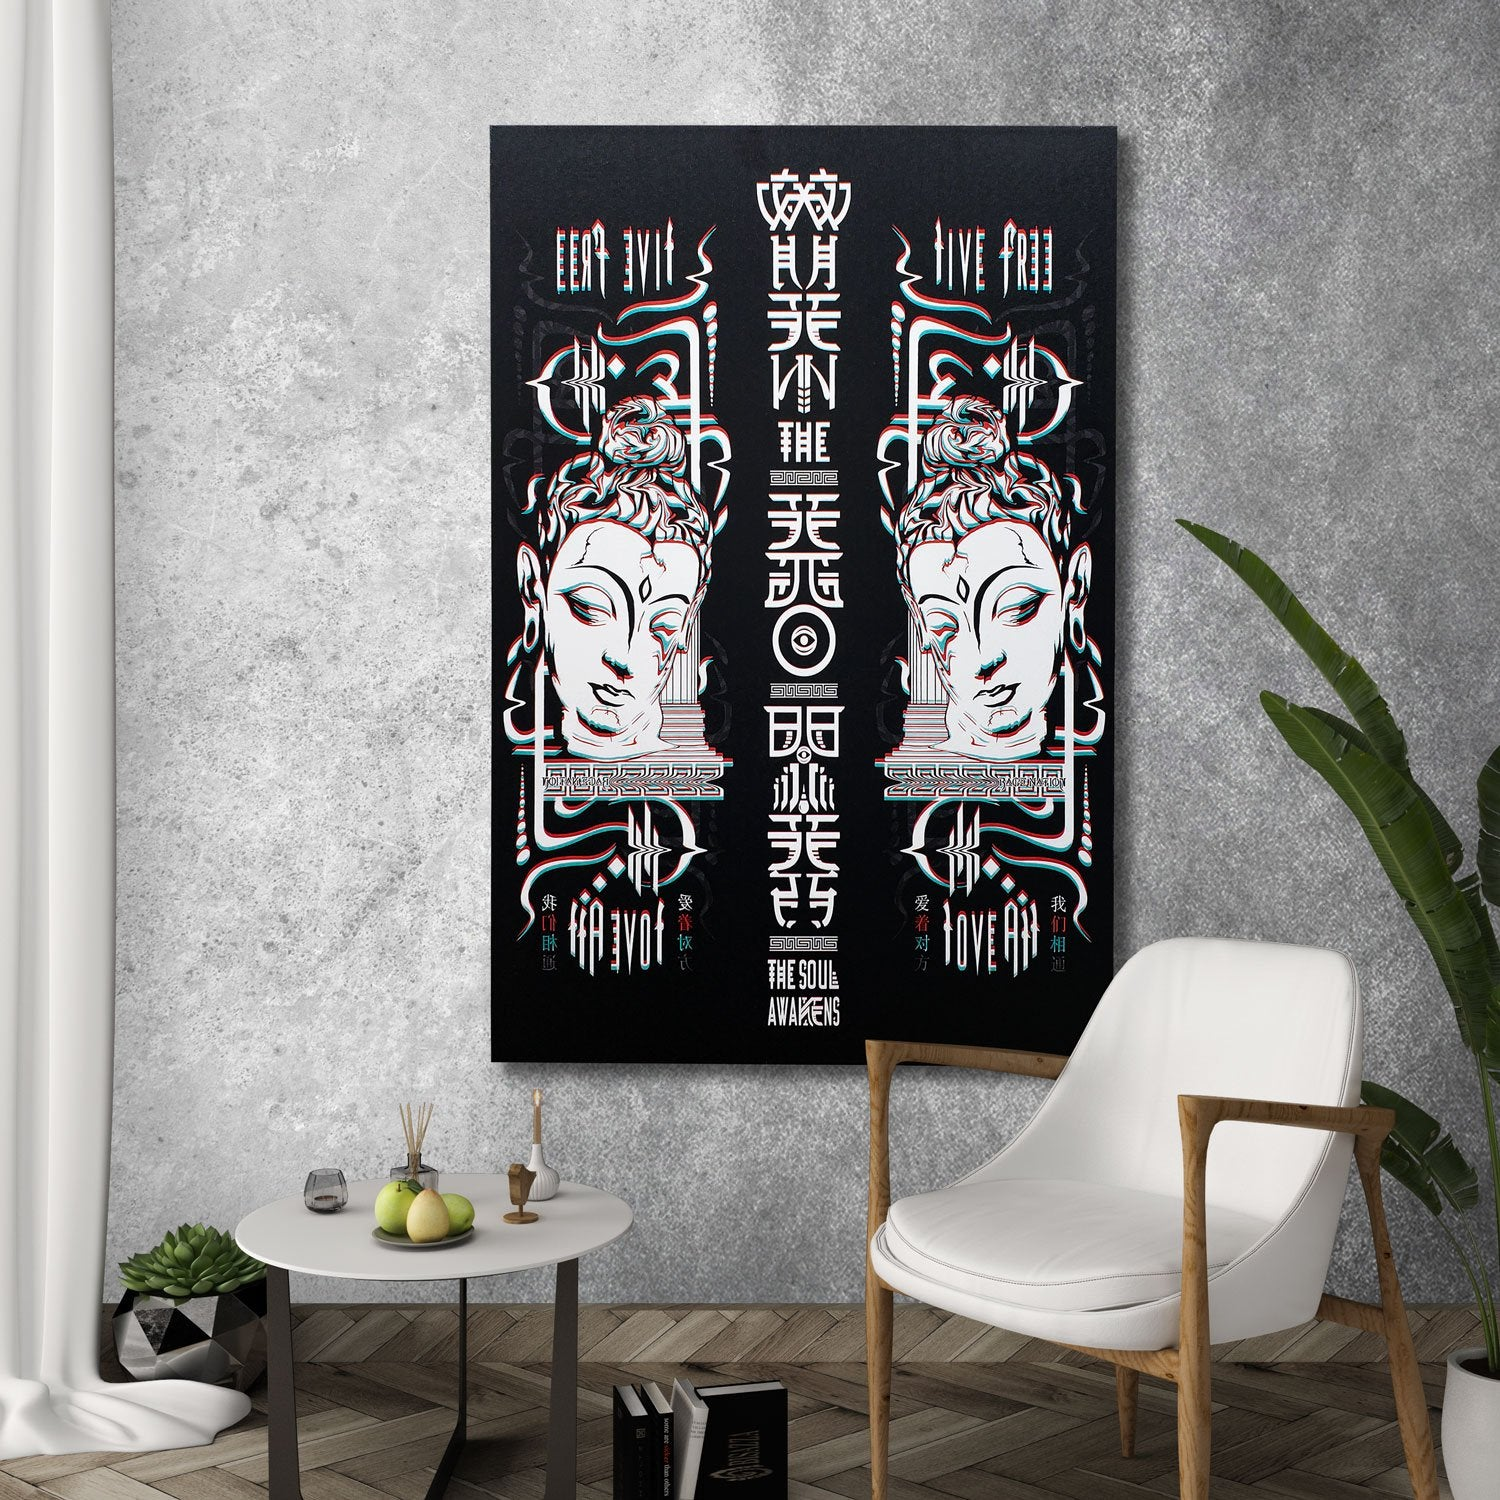 LIVE FREE LOVE ALL • Vertical Canvas Wrap